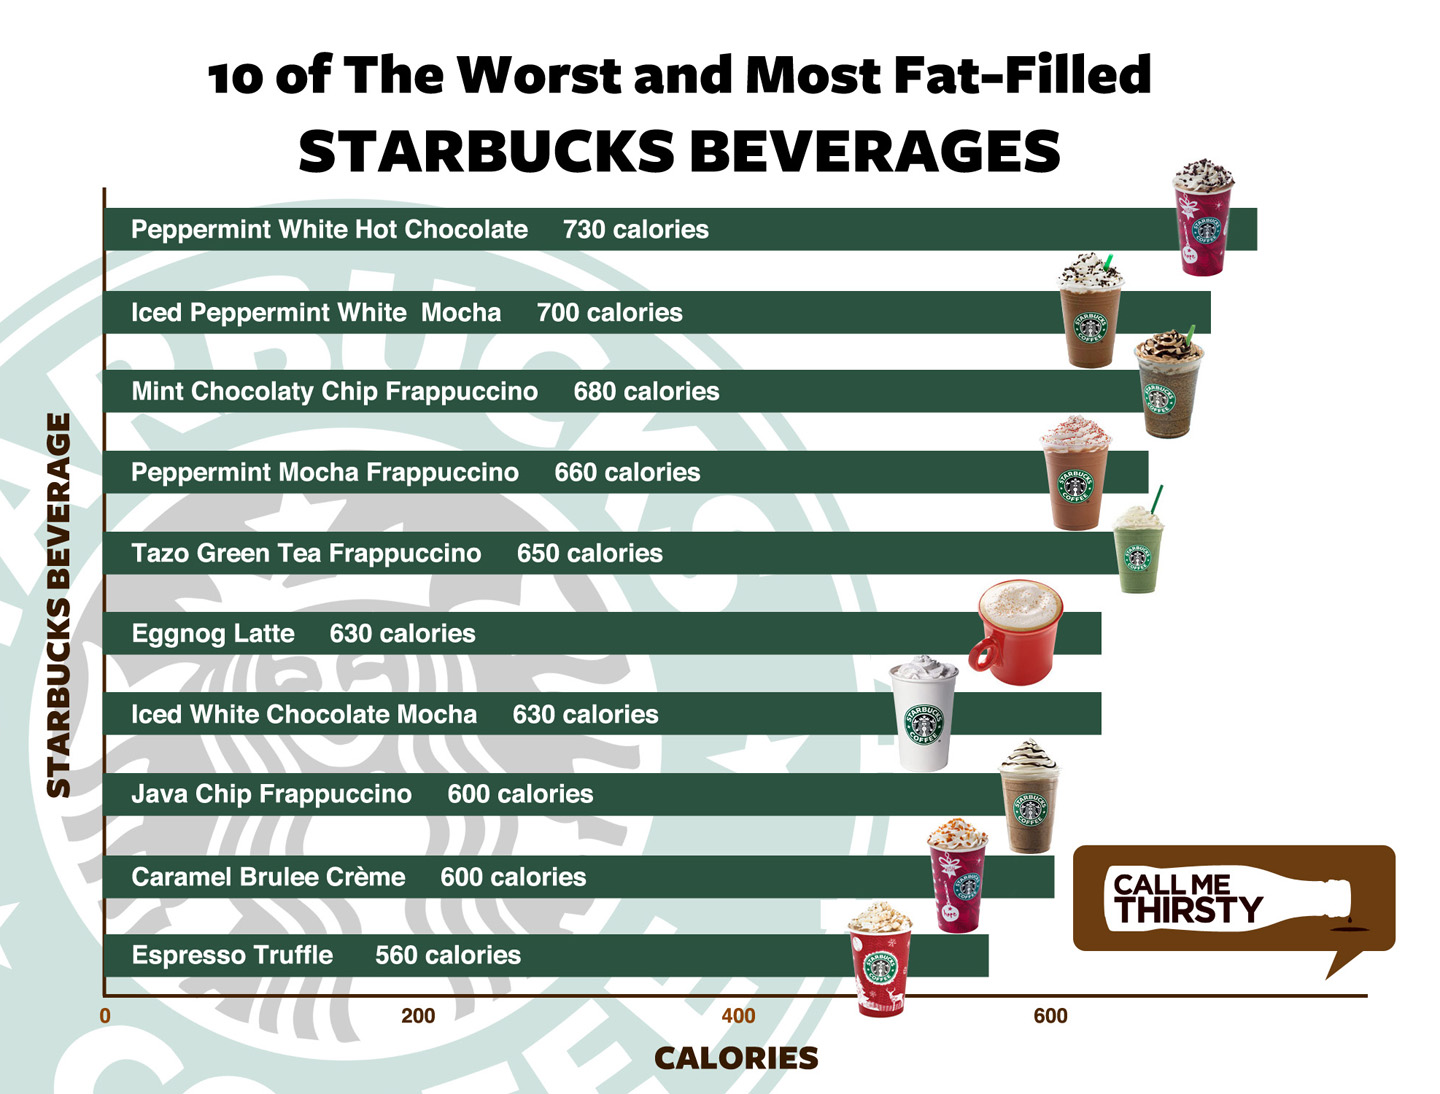 Fatty starbucks yet another reason to drink indie roasts san